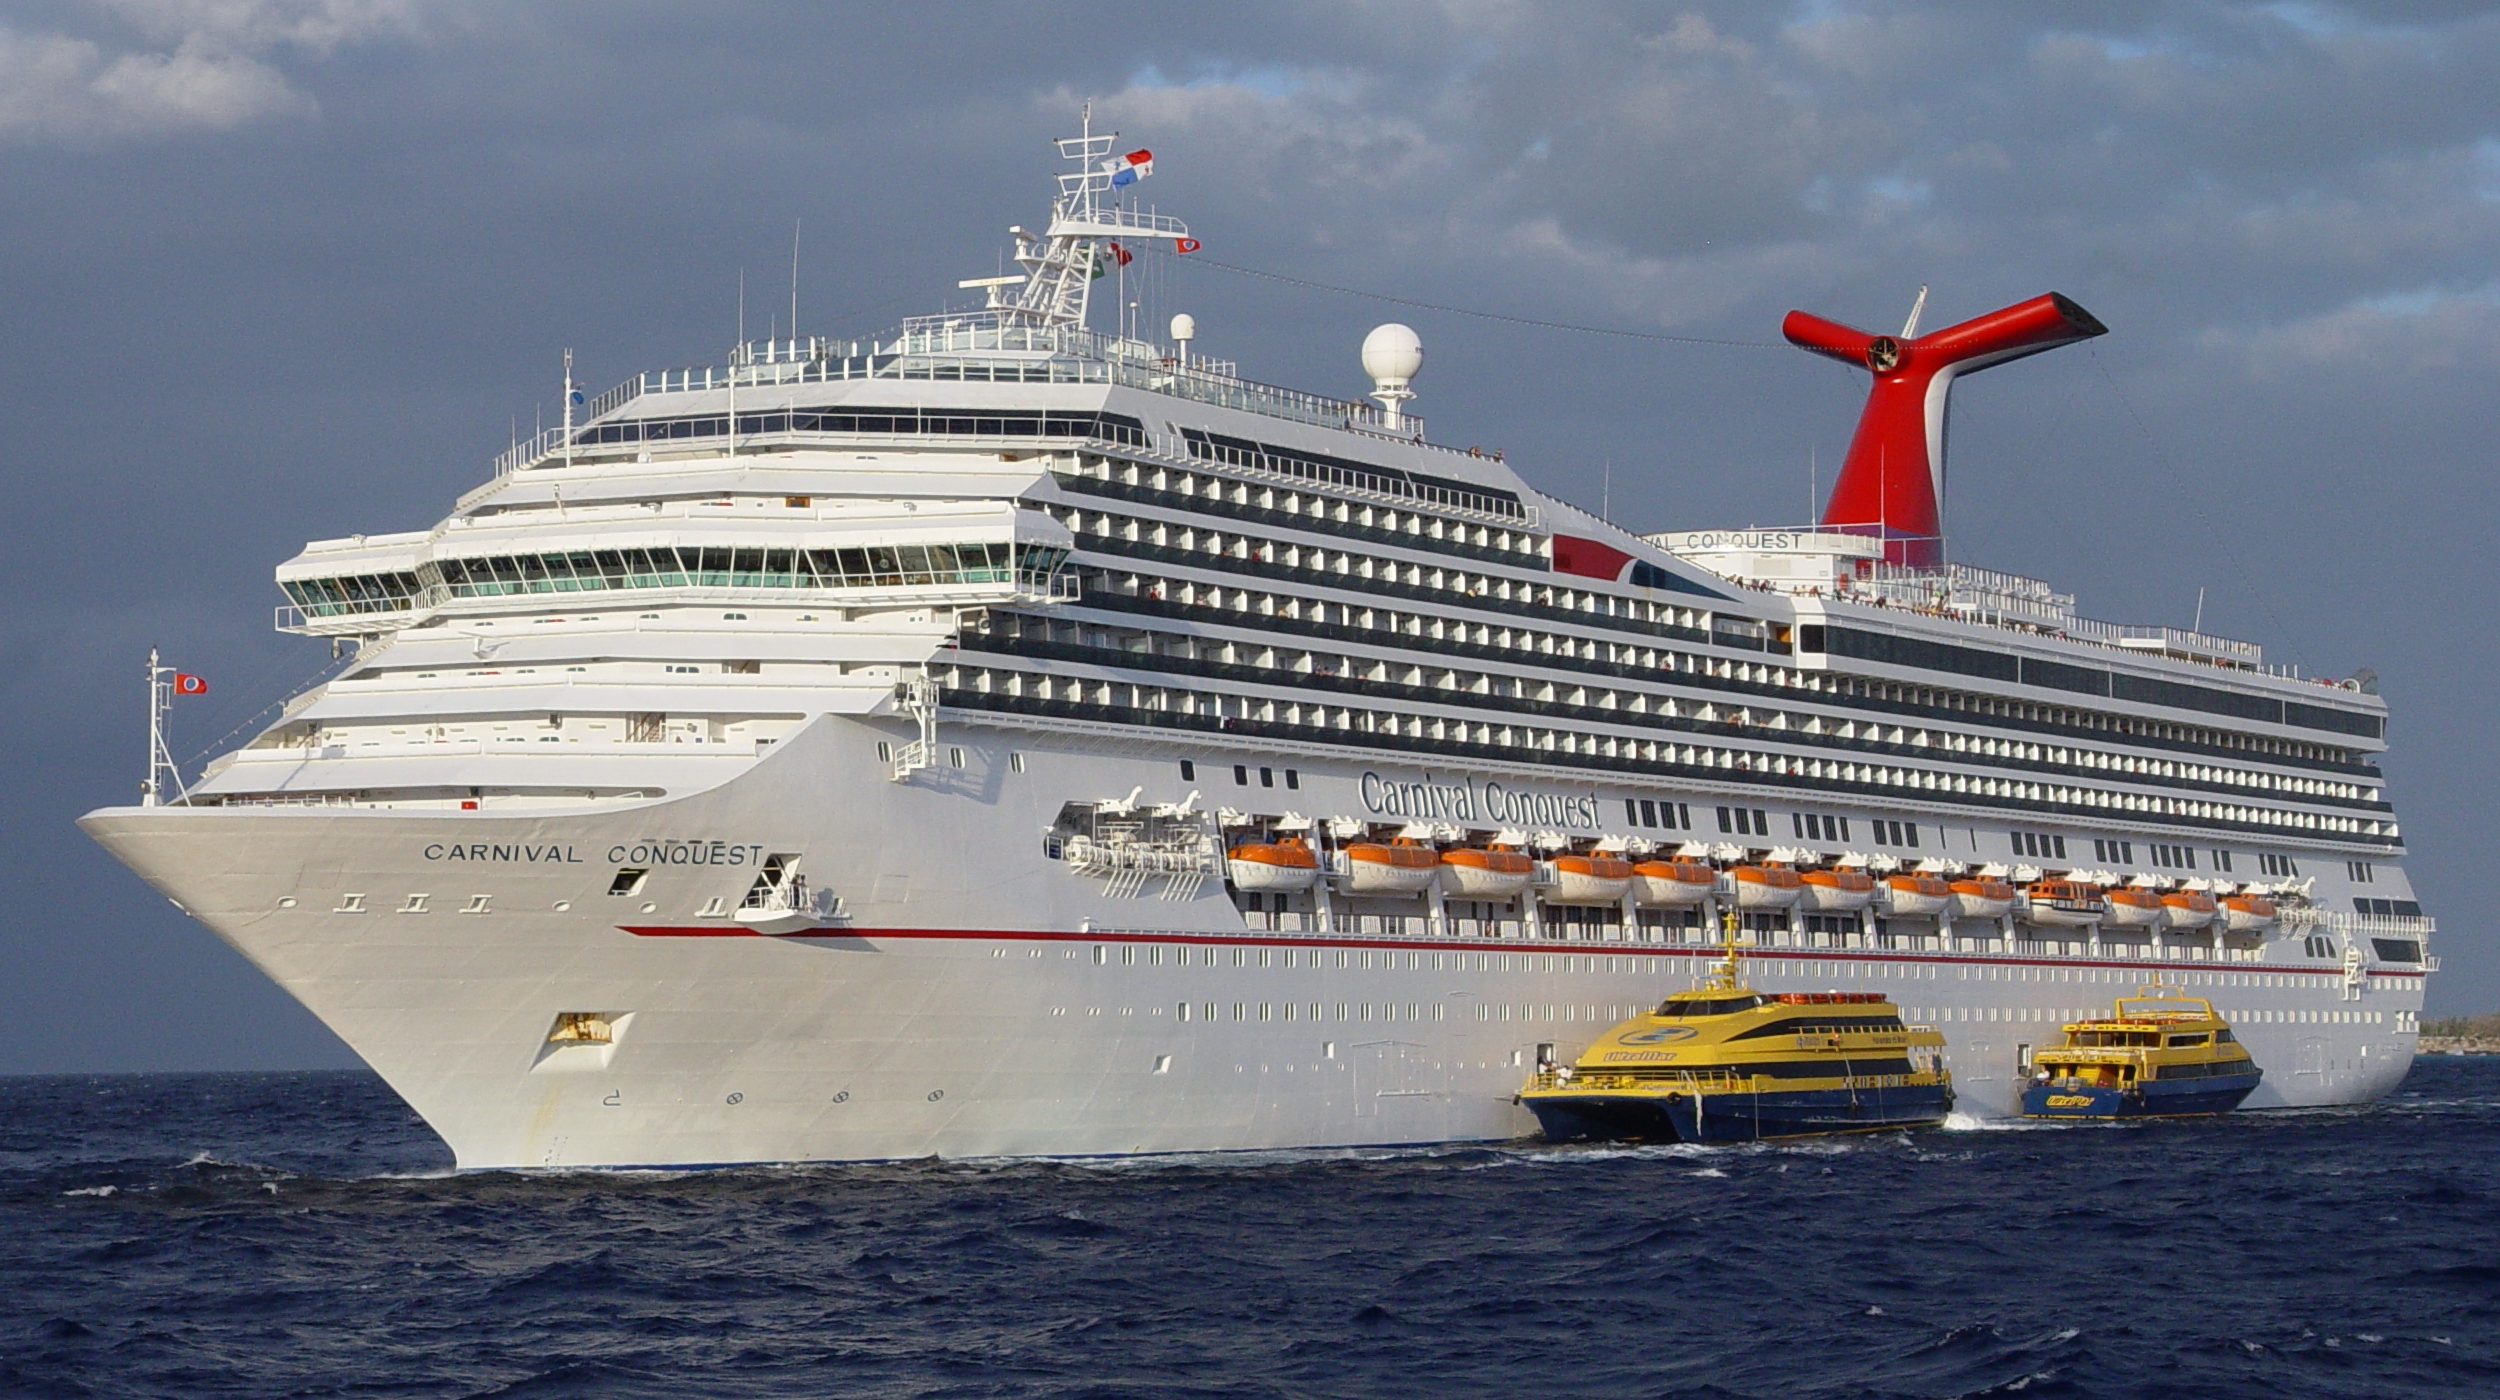 By Derek Kastner from Reston, VA, USA (Carnival Conquest VII) [CC BY 2.0 (http://creativecommons.org/licenses/by/2.0)], via  Wikimedia Commons .